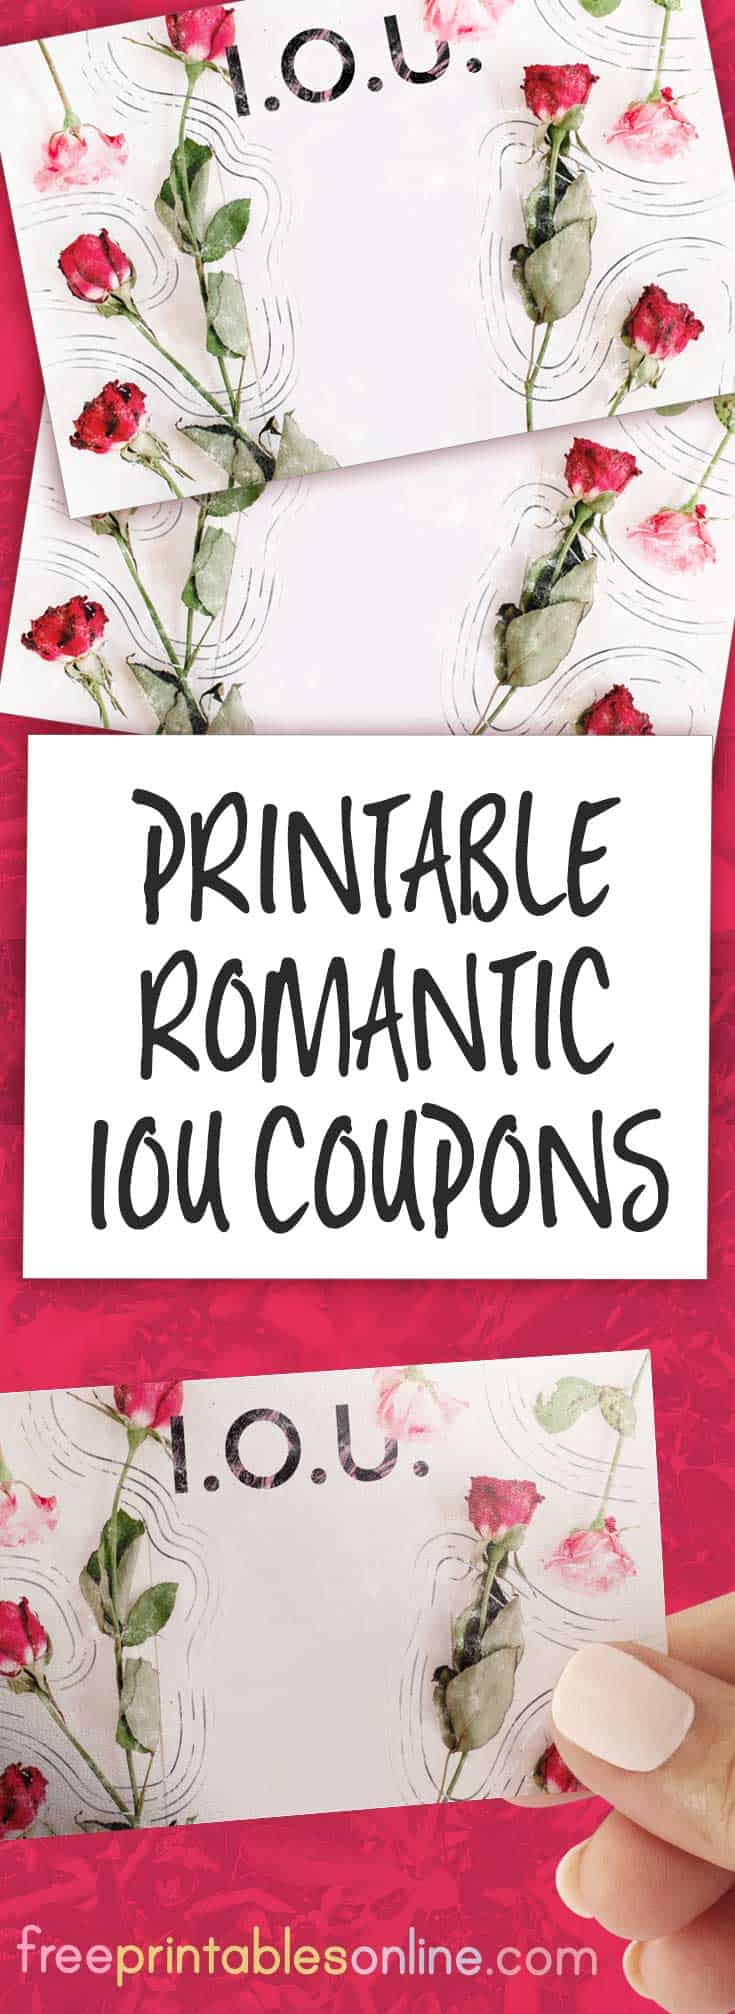 romantic iou coupon with roses